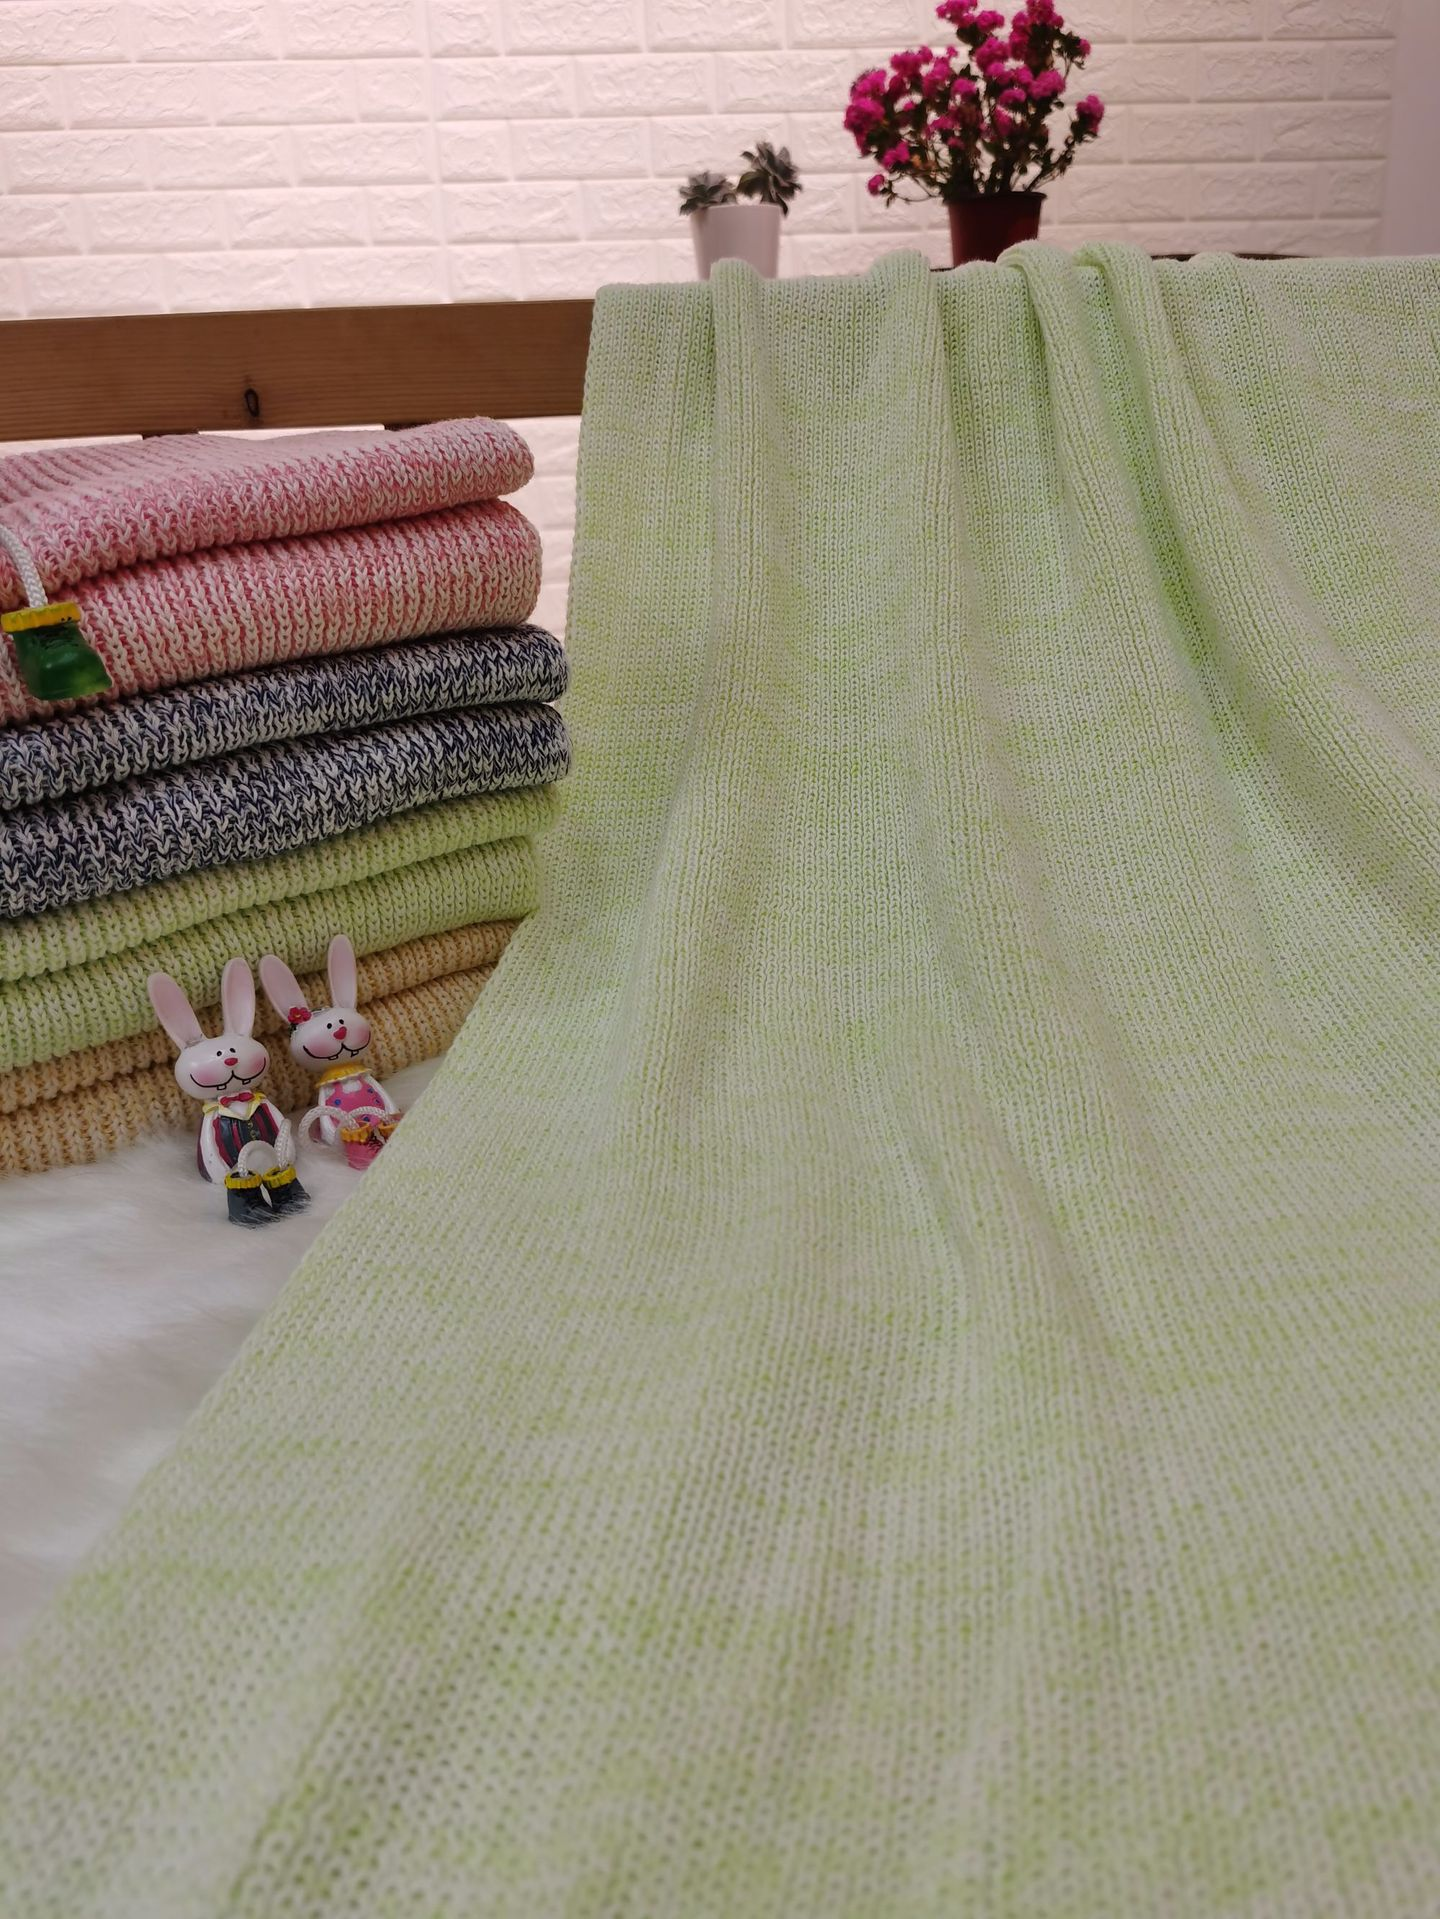 Carefully Sewn Cotton Blanket for Cold Weather